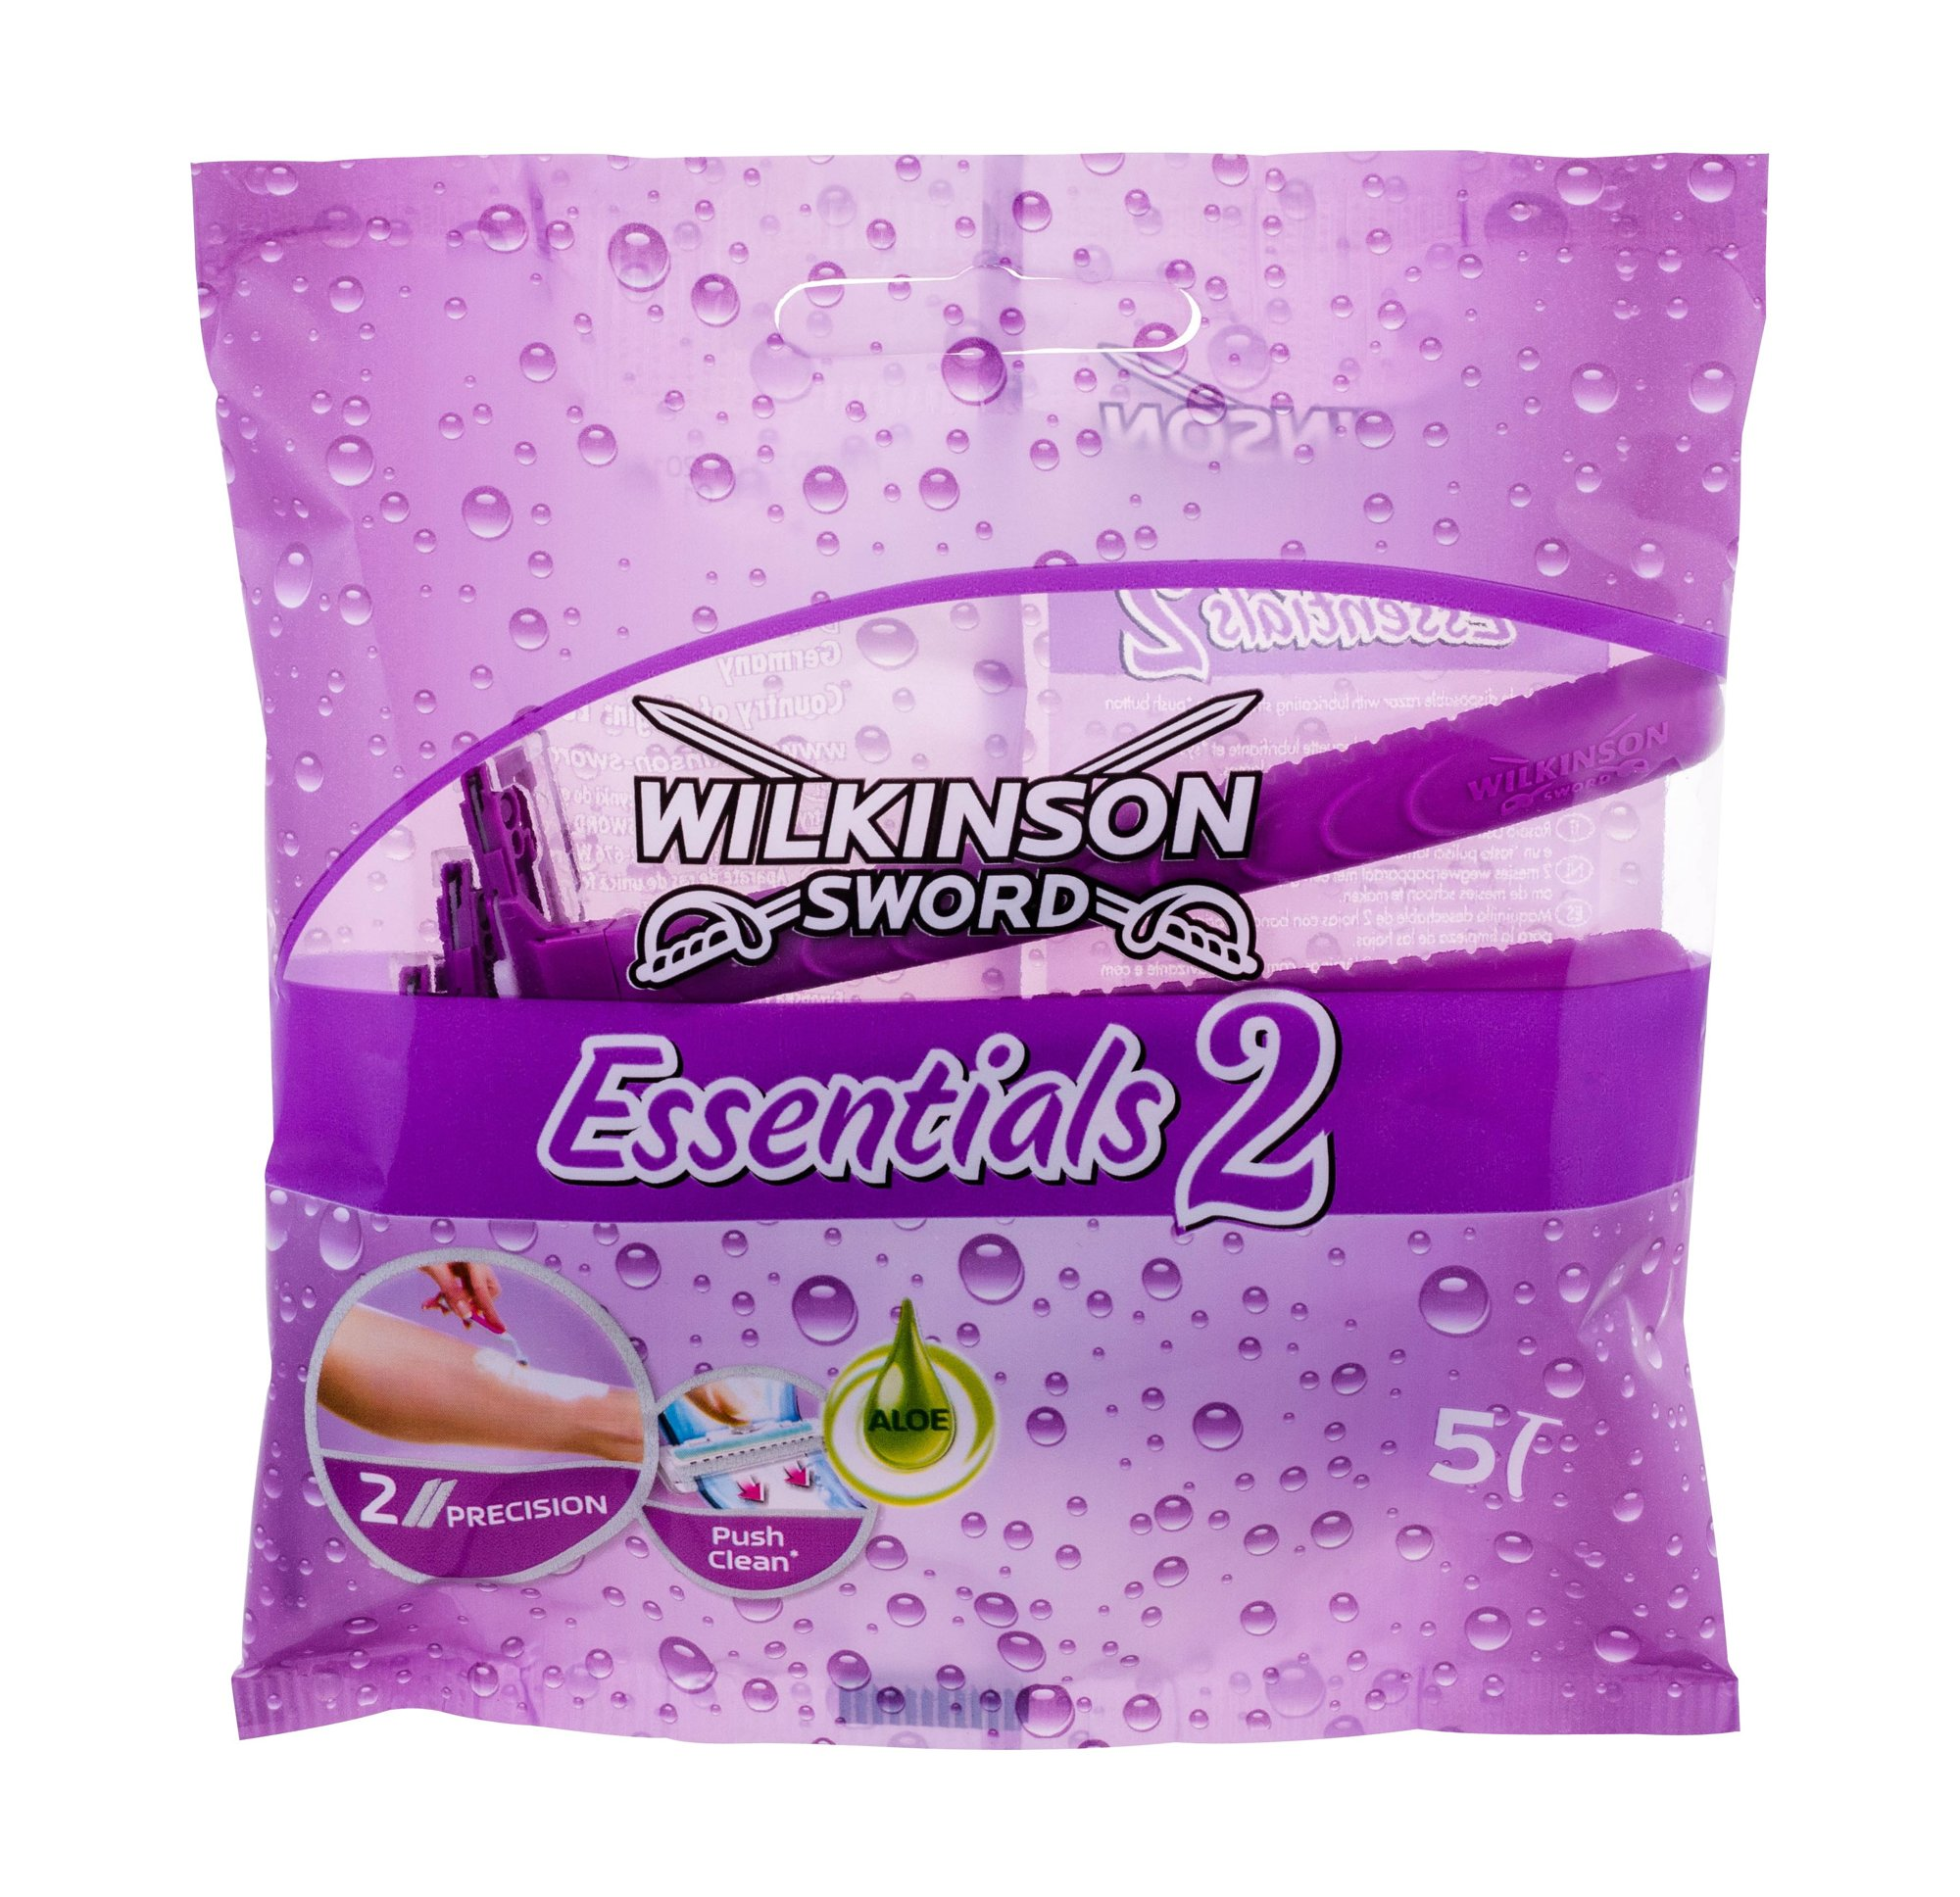 Wilkinson Sword Essentials 2 Razor 5ml